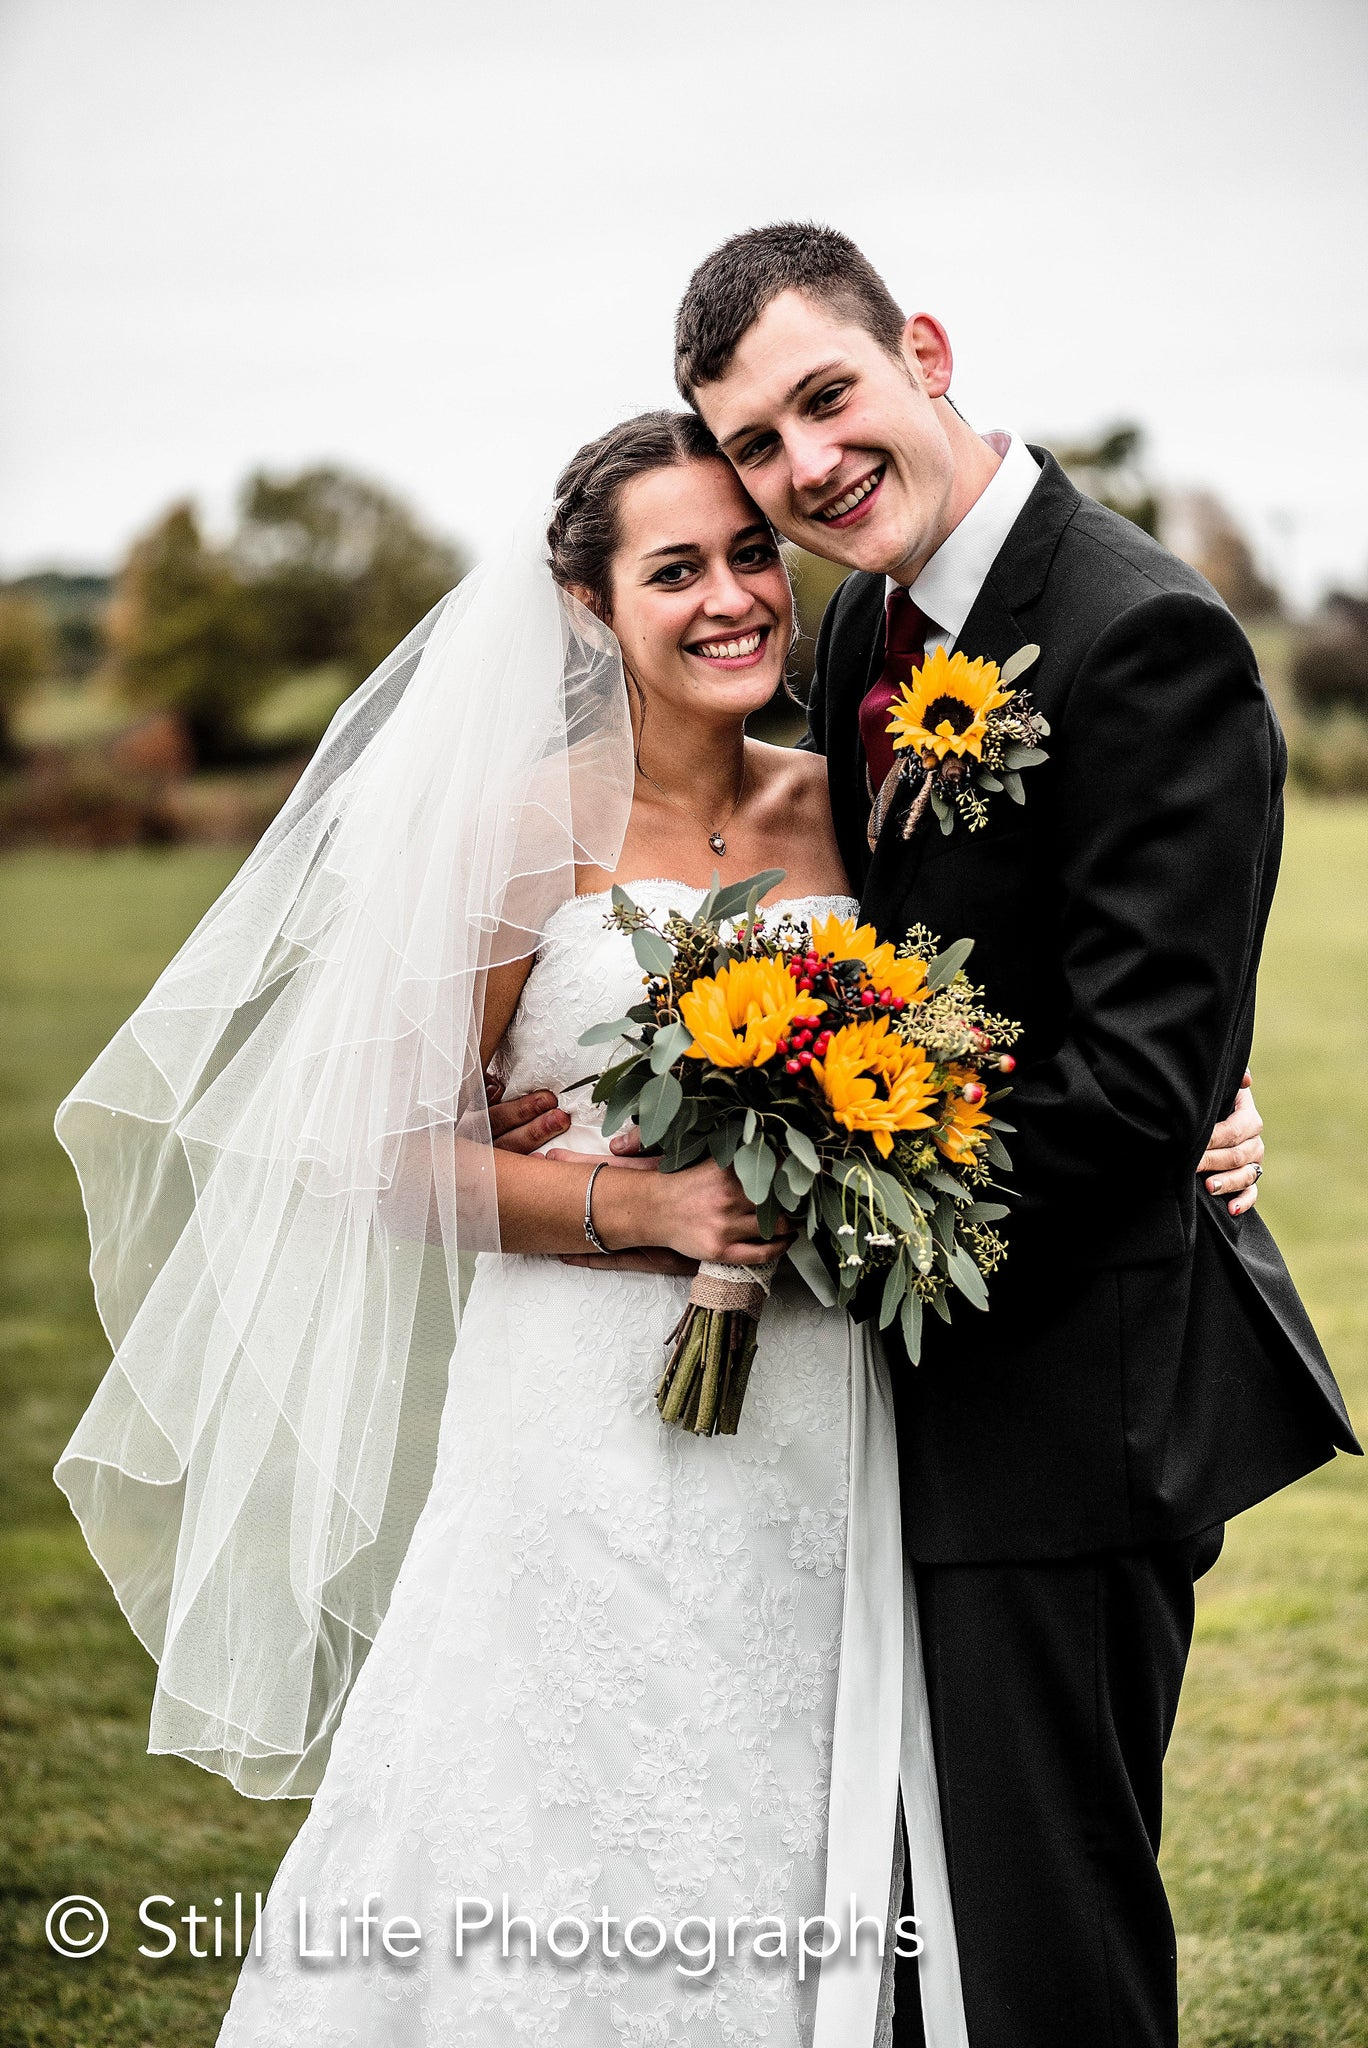 Bride and Groom with golden Sunflower and red Rosehip berry bouquet and buttonhole.